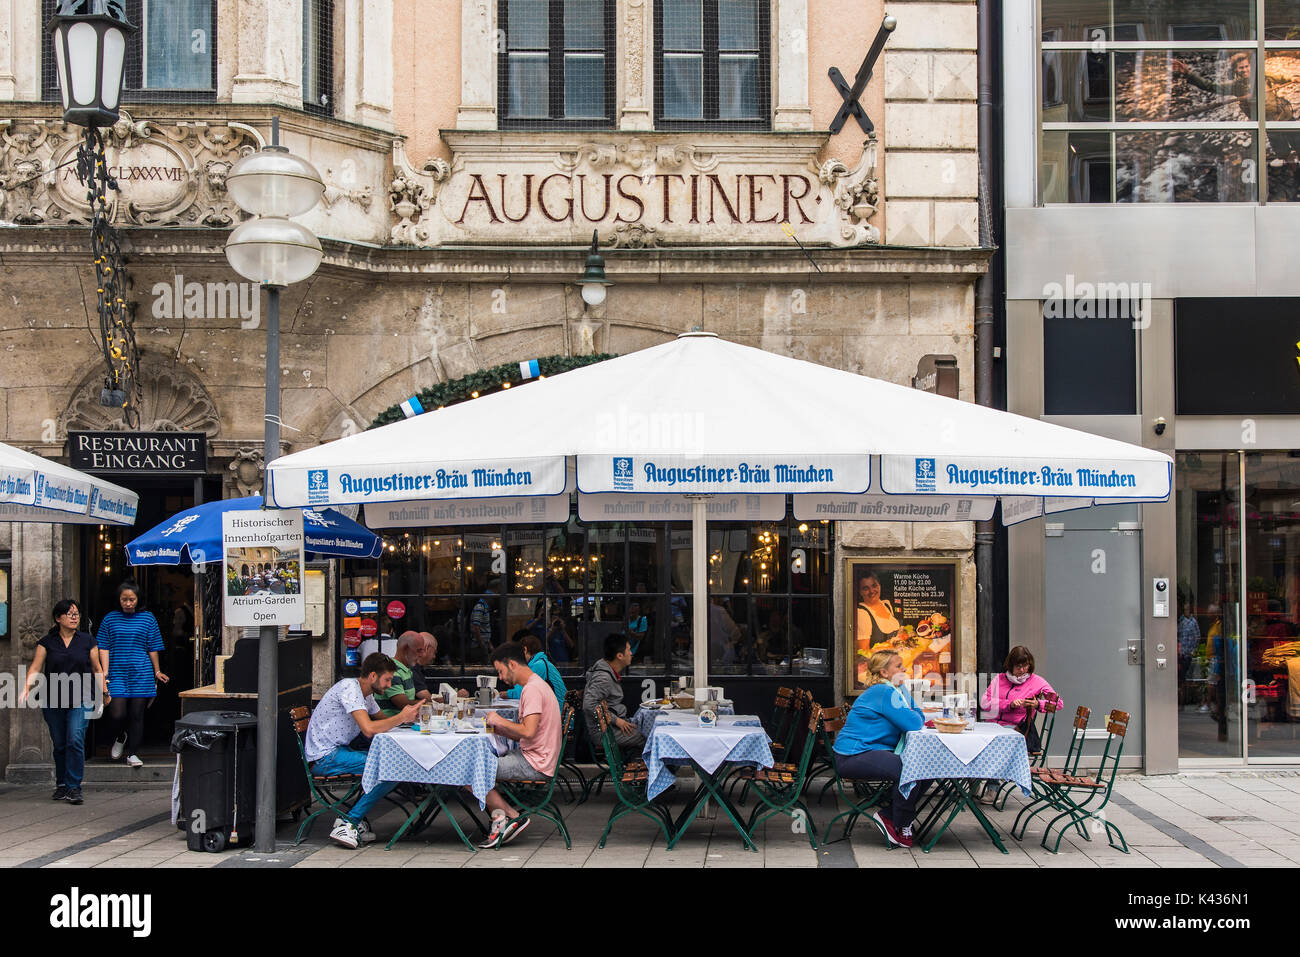 Tourists seated at tables outside the historic Augustiner beer hall, Munich, Bavaria, Germany - Stock Image